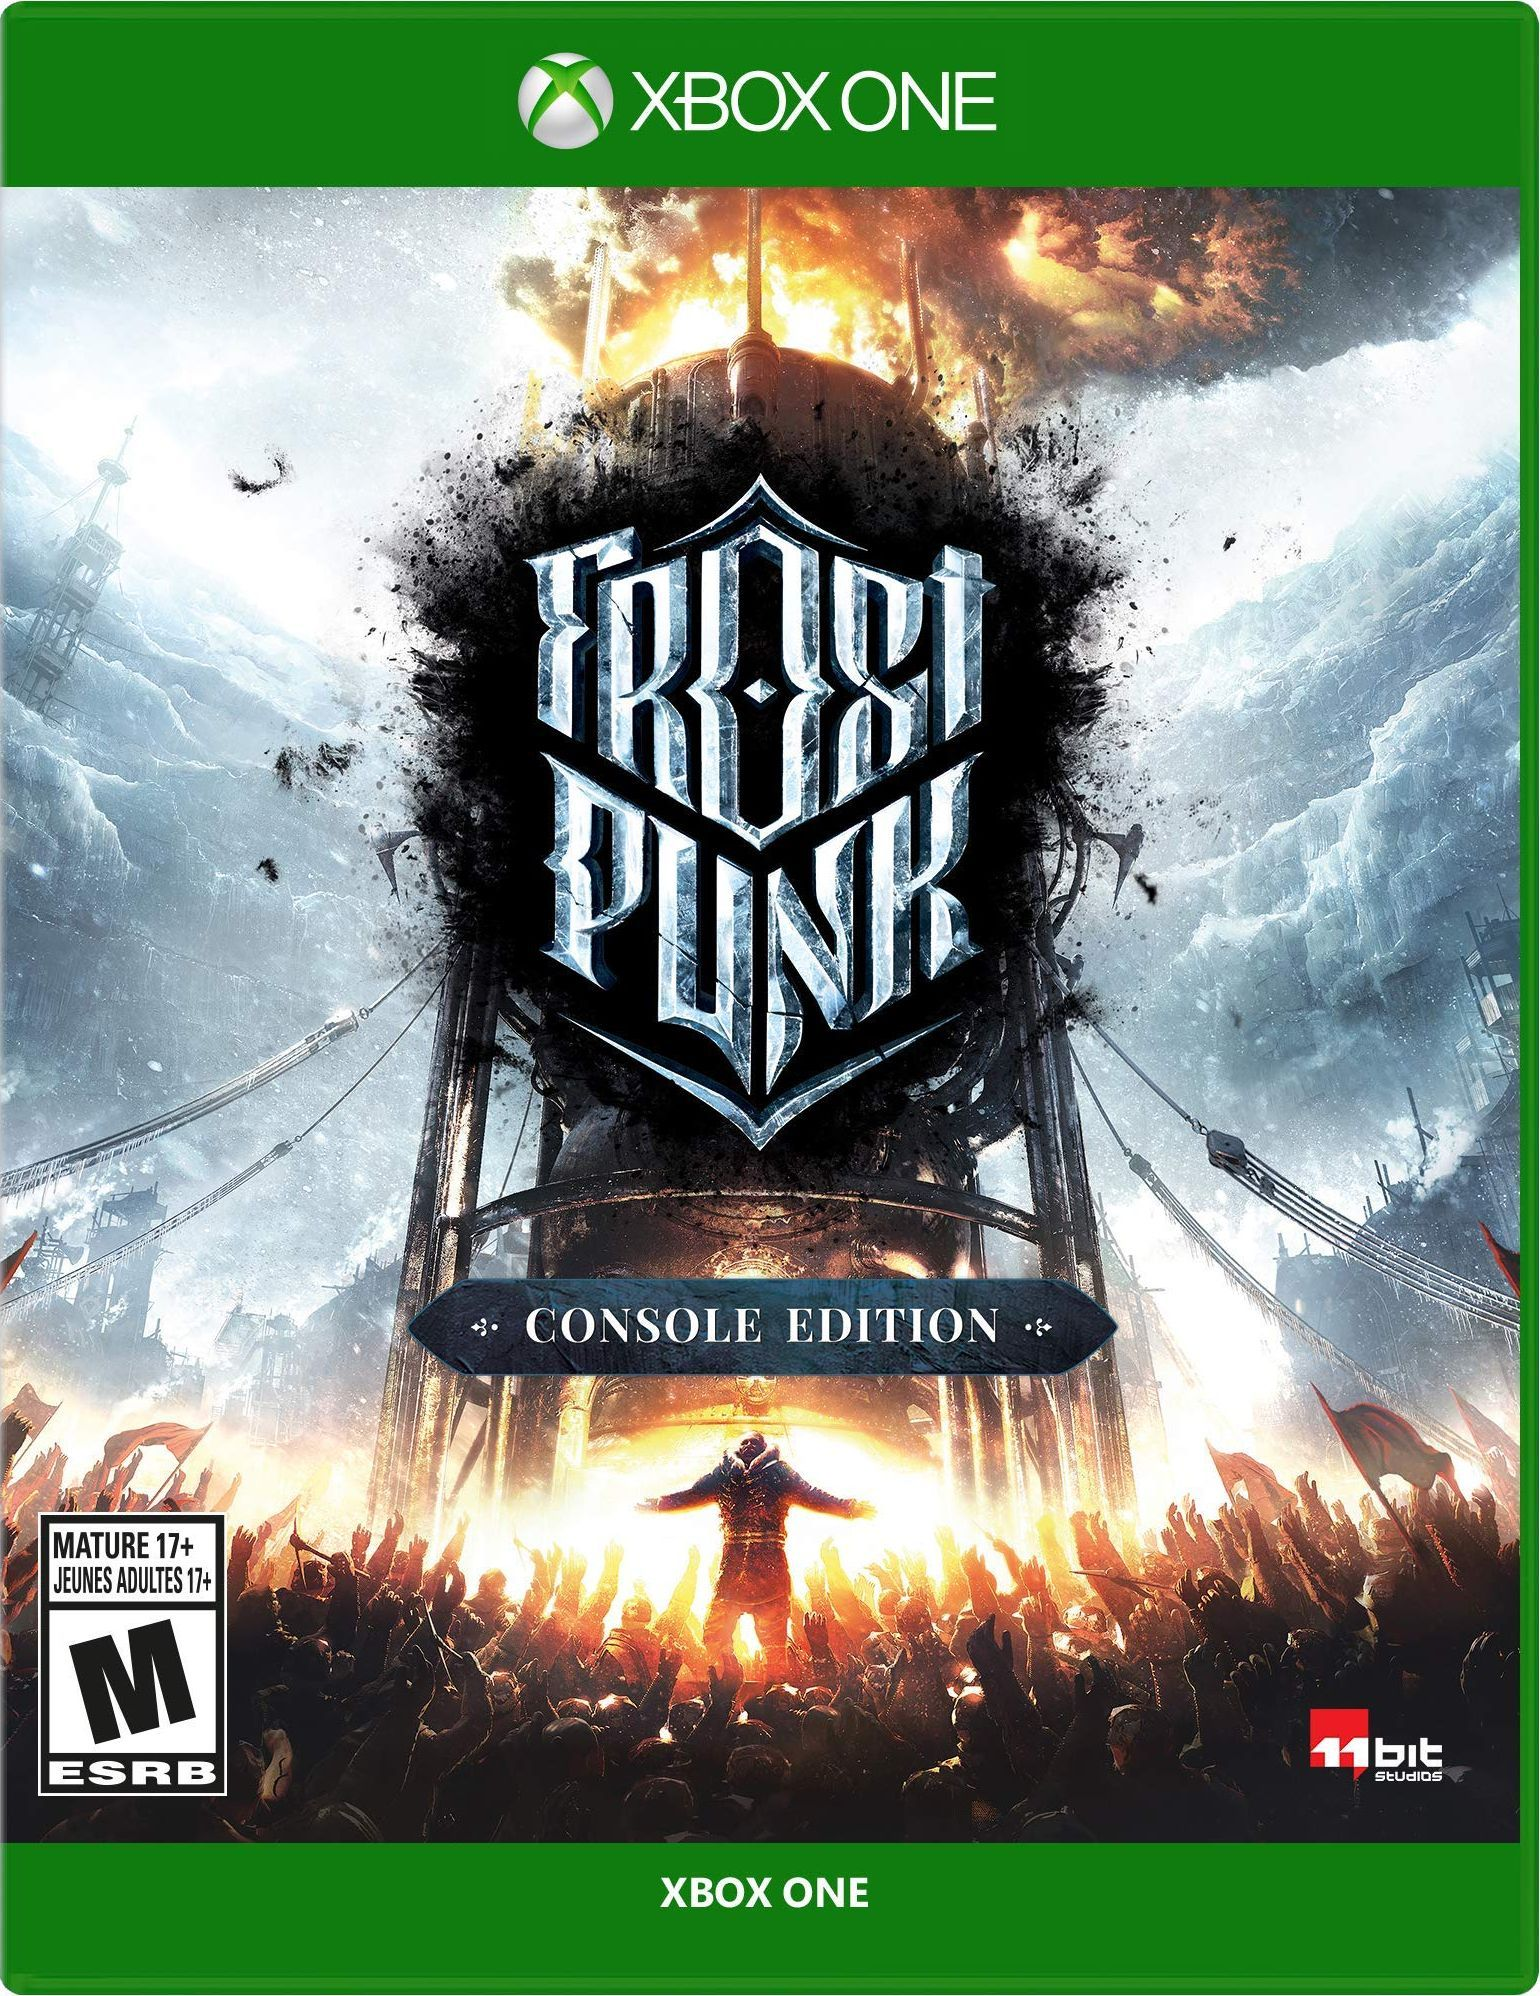 Frostpunk Console Edition Xbox one, Xbox, Xbox one games